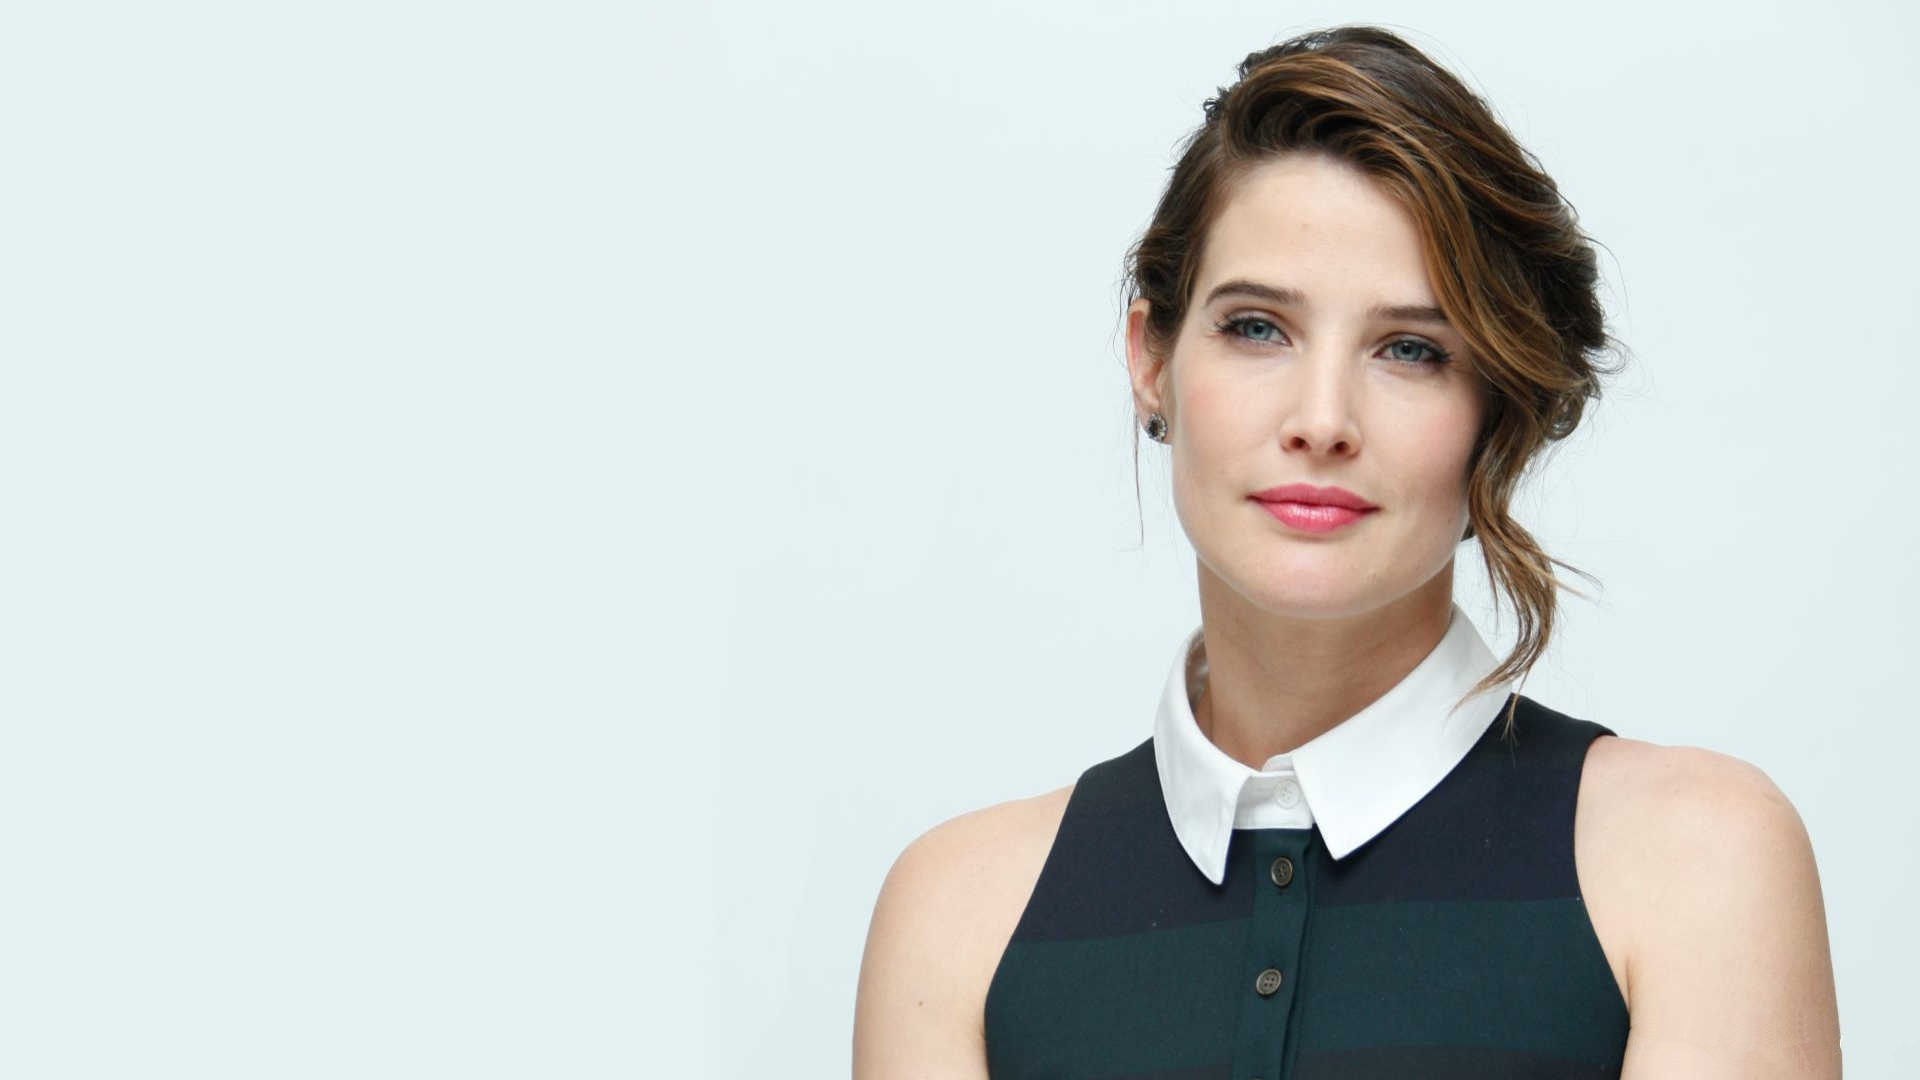 1920x1080 - Cobie Smulders Wallpapers 2